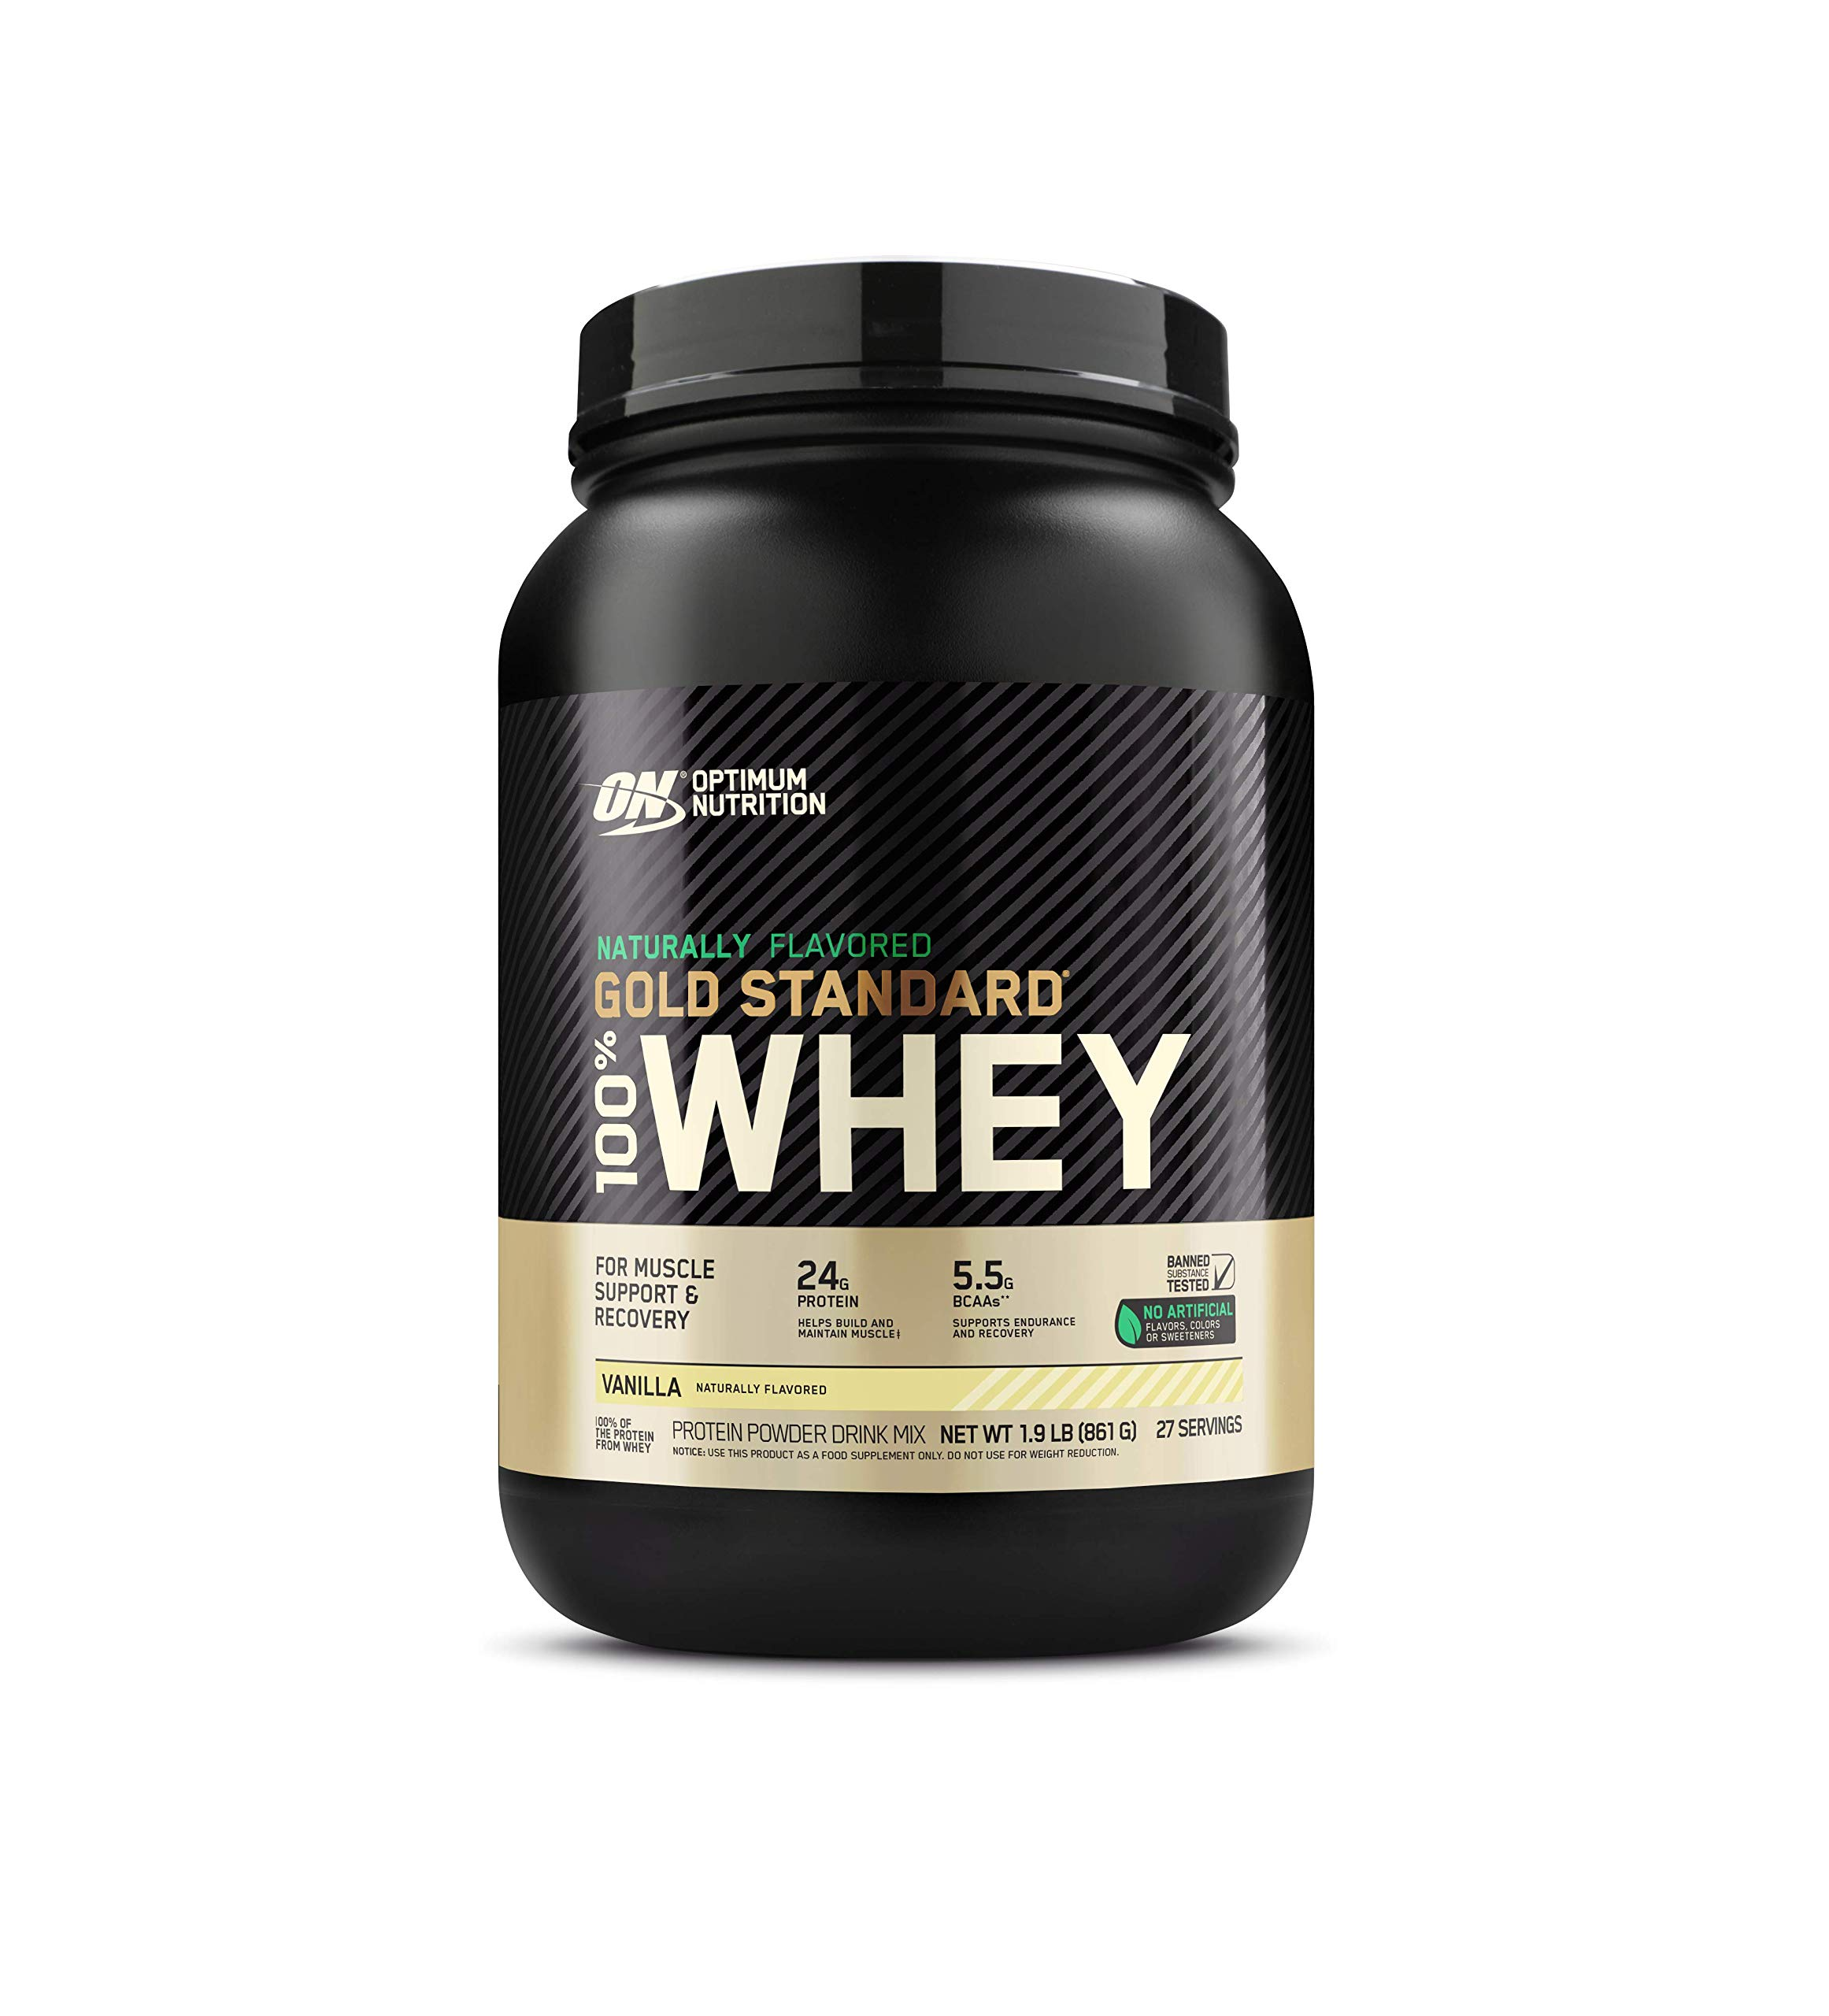 Optimum Nutrition Gold Standard 100% Whey Protein Powder, Naturally Flavored Vanilla, 1.9 Pound (Packaging May Vary)